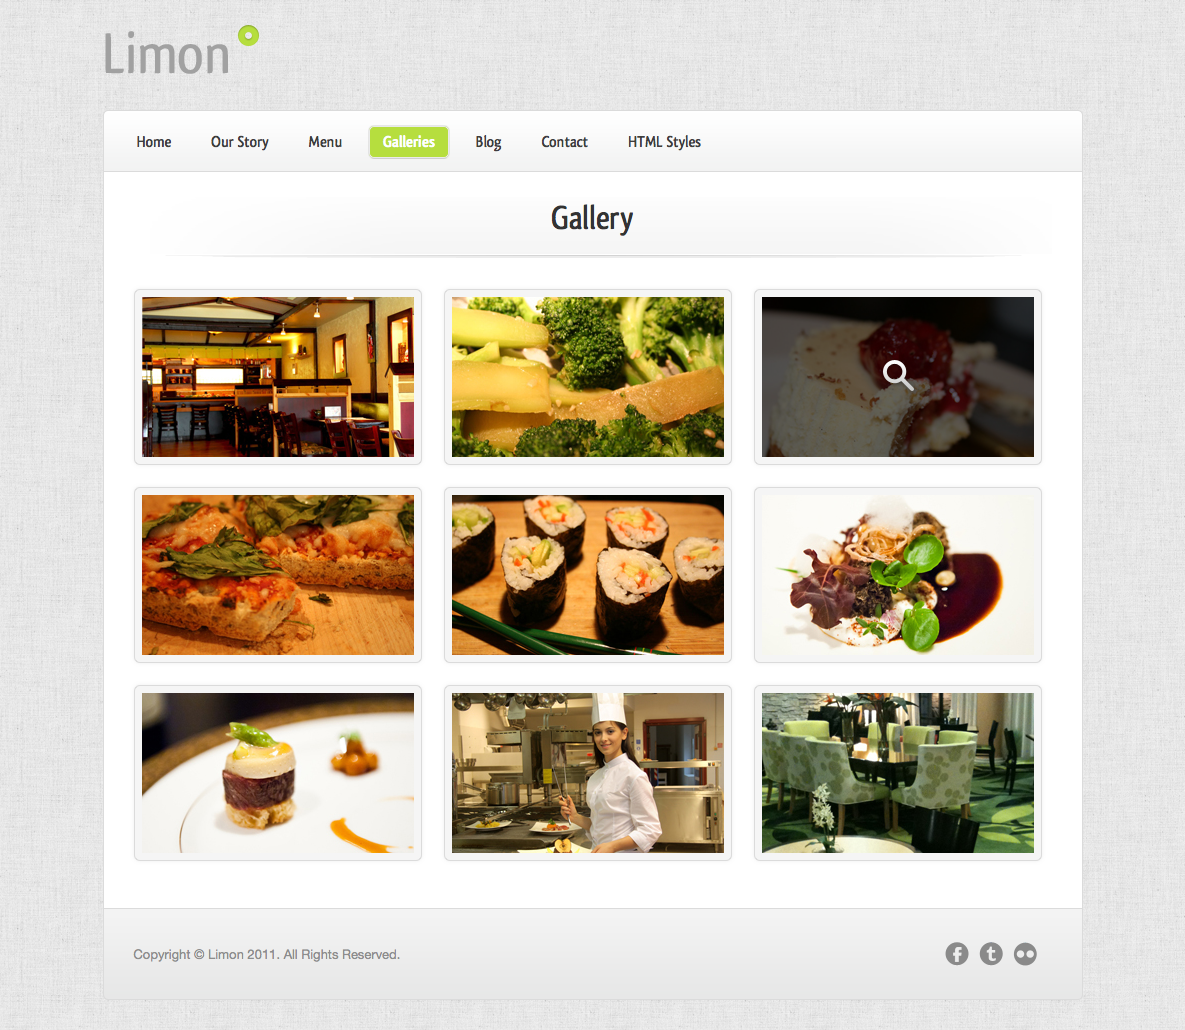 Limon - A Restaurant and Spa Wordpress Theme - Gallery - A full-featured query slideshow, alternate thumbnail galleries are also included.